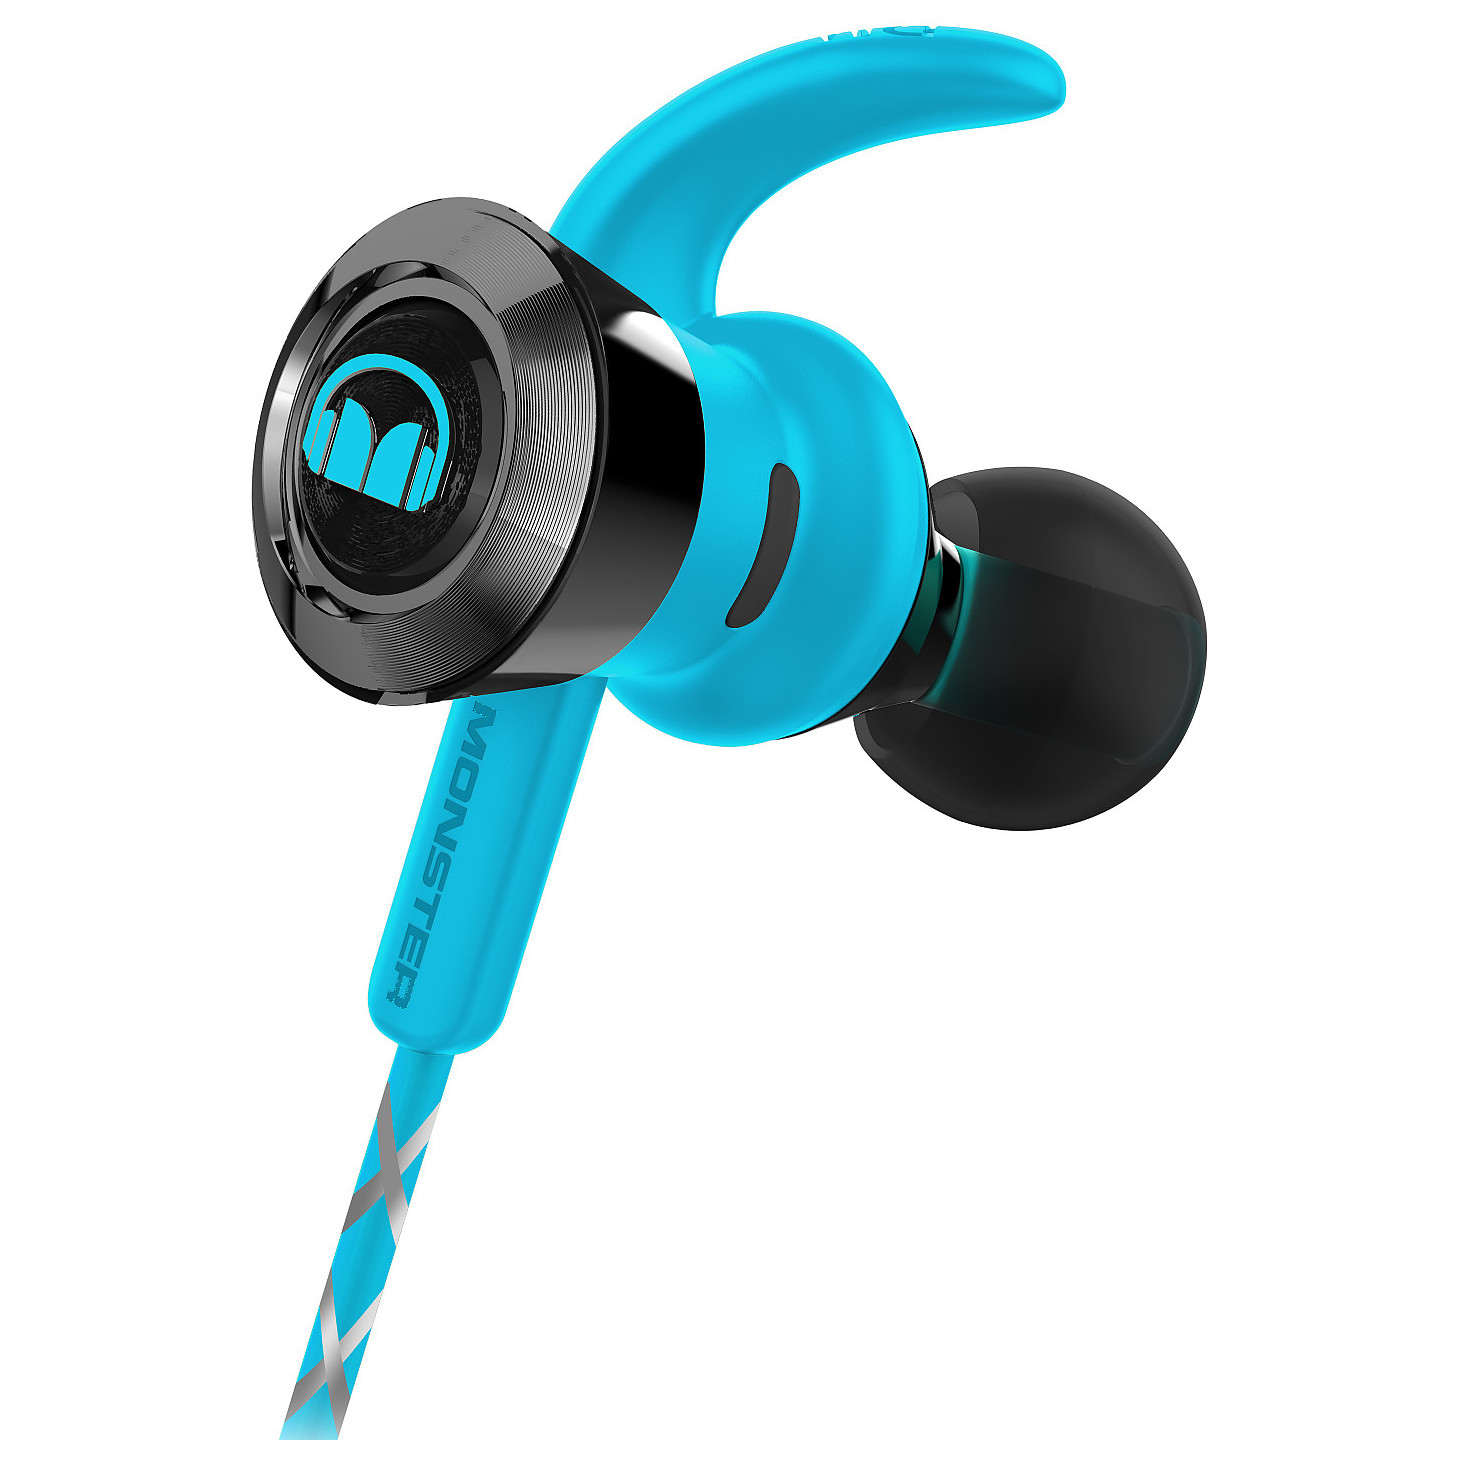 Monster Isport Achieve In Ear Bluetooth Sport Headphone Black 137089 Universal Headset Earphone 41 Wireless Branded Victory Headphones Blue 137086 00